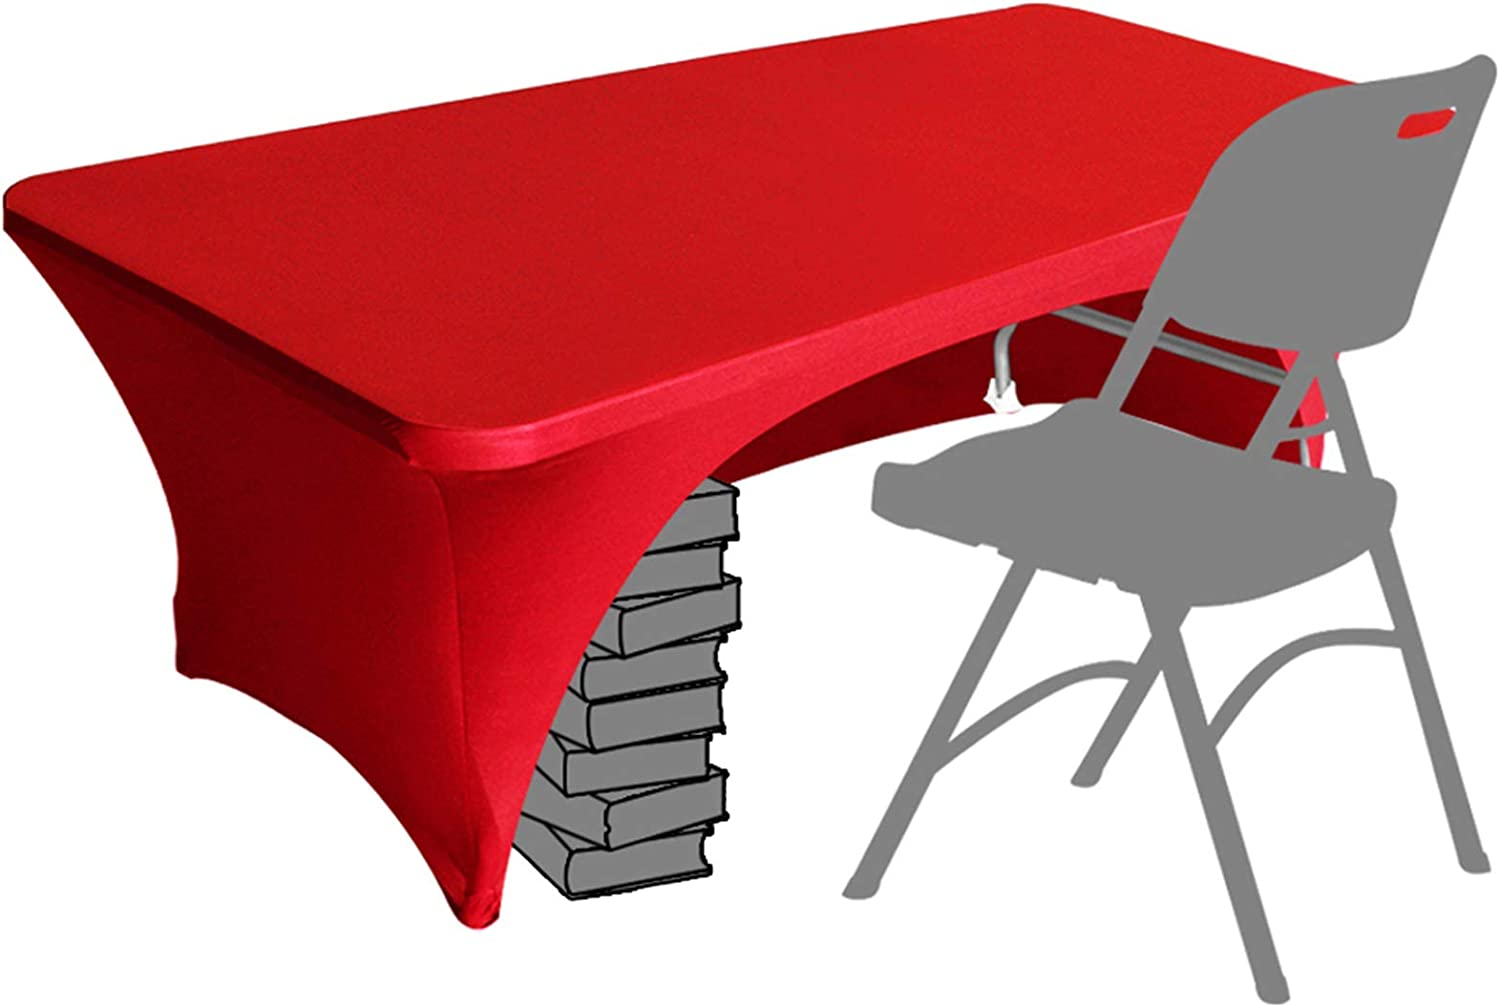 Eurmax Spandex Table Cover 6 ft. Fitted 30+ Colors Polyester Tablecloth Stretch Spandex Table Cover-Table Toppers,6 FT Table Cover Open Back(6Ft,Red)